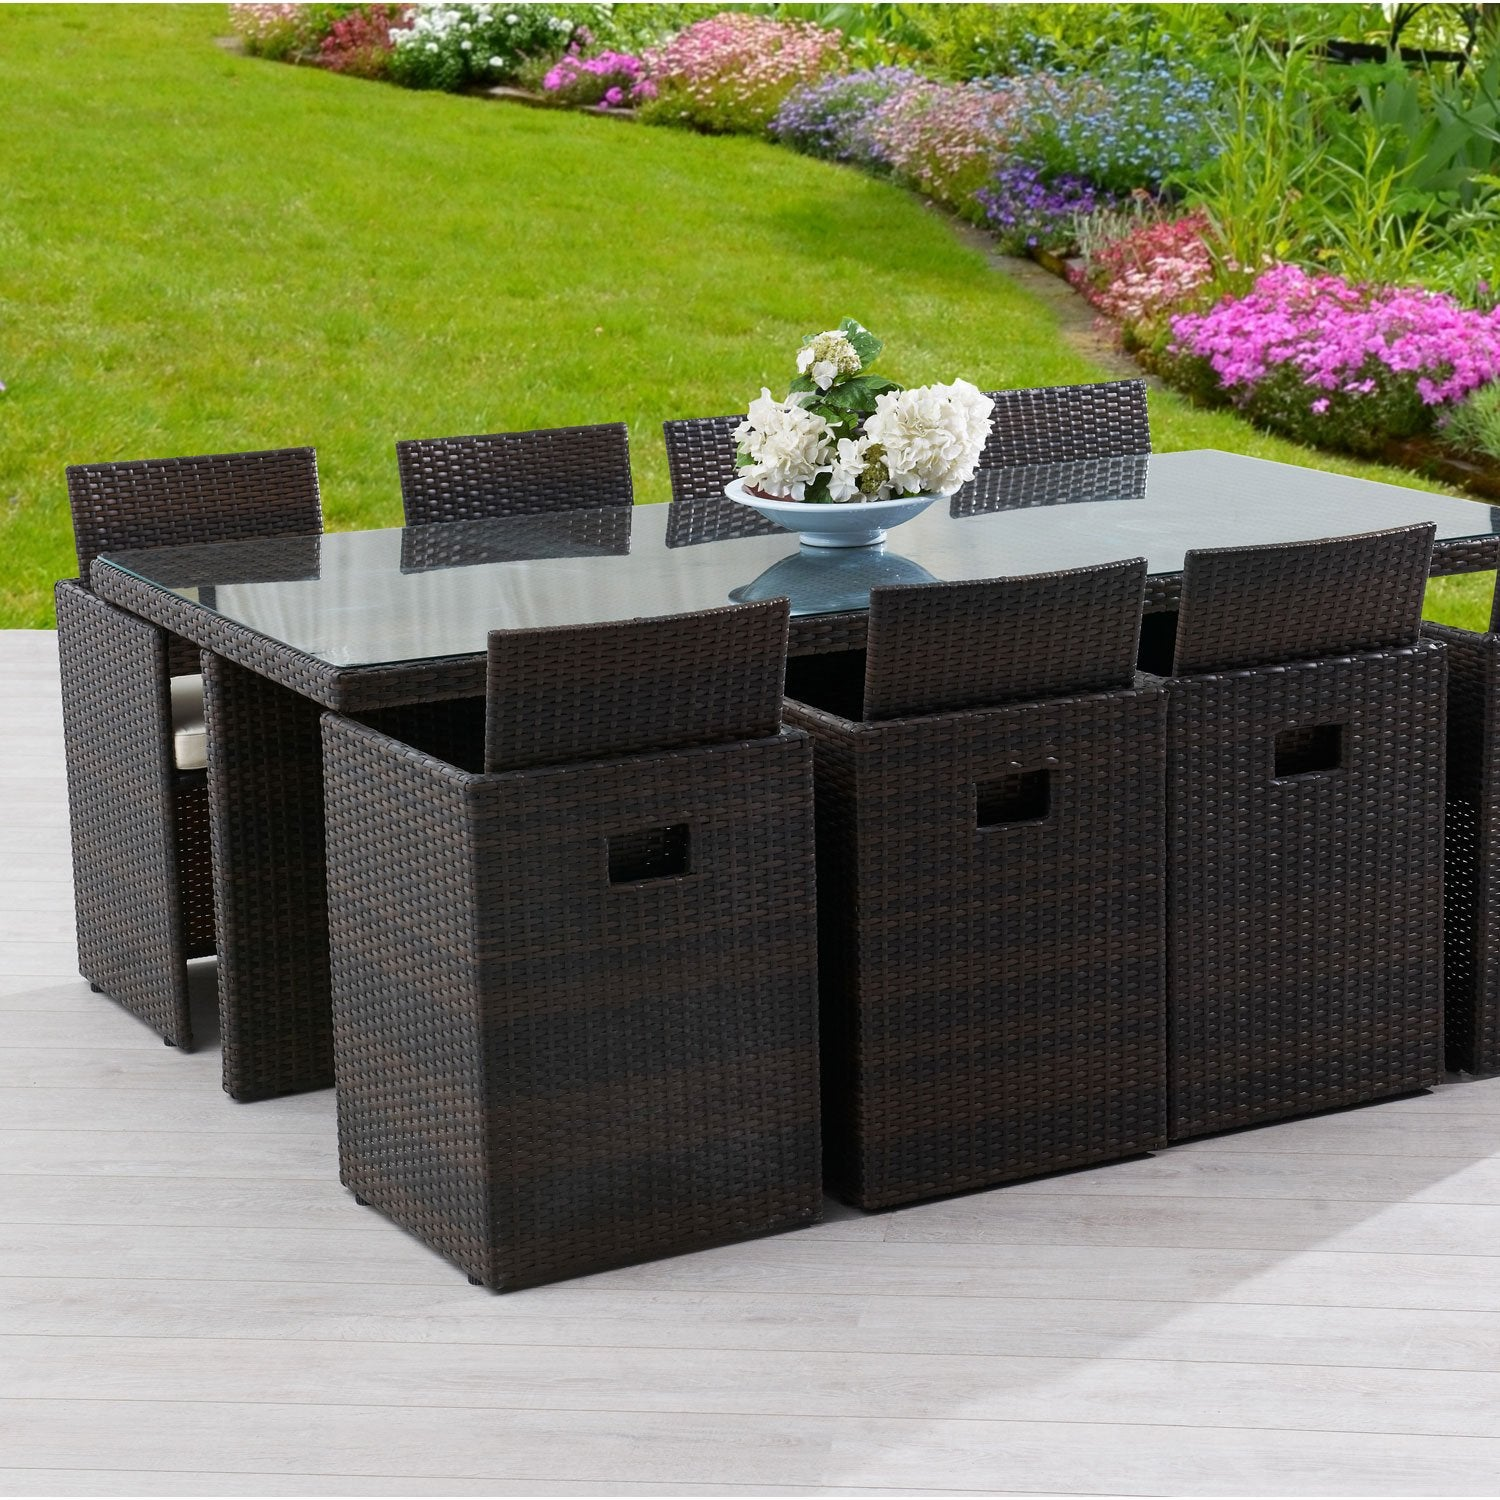 Salon de jardin encastrable r sine tress e marron 1 table - Salon jardin encastrable resine tressee ...